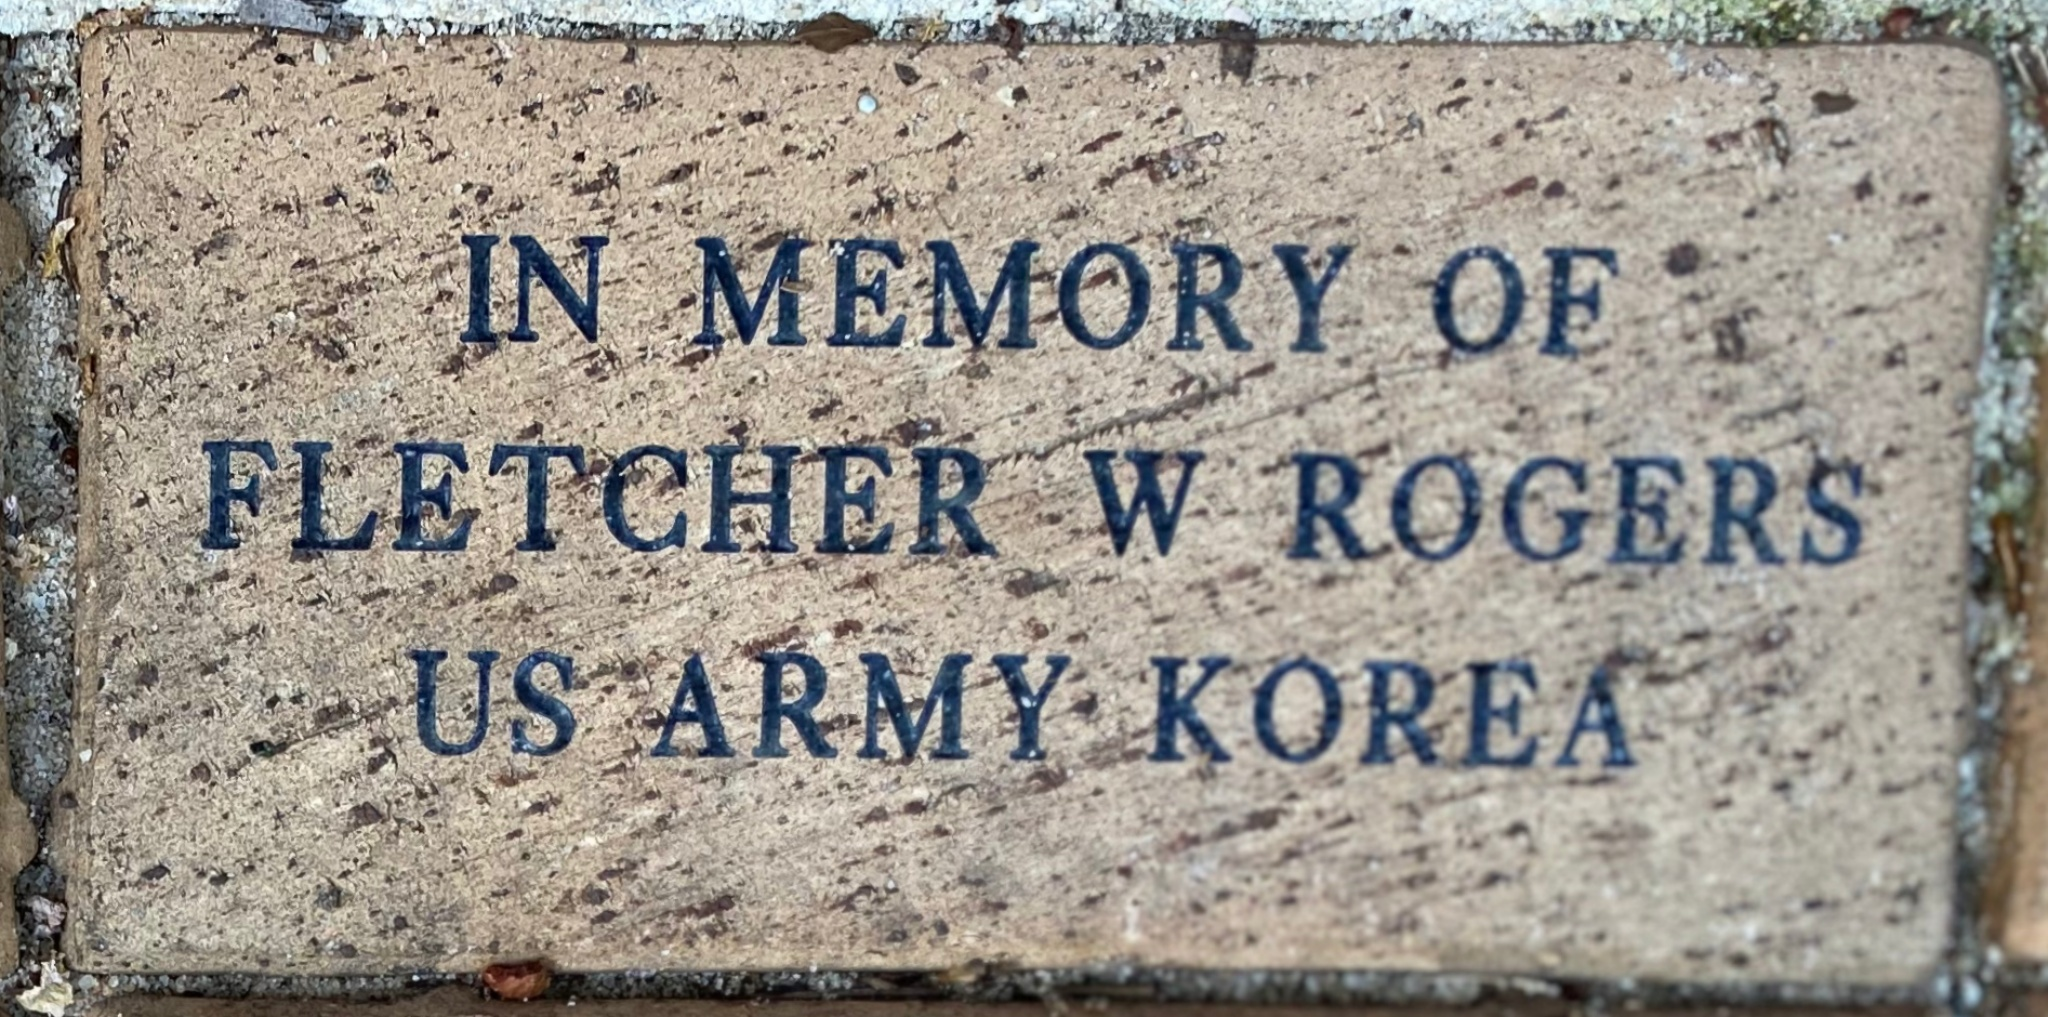 IN MEMORY OF  FLETCHER W ROGERS US ARMY KOREA